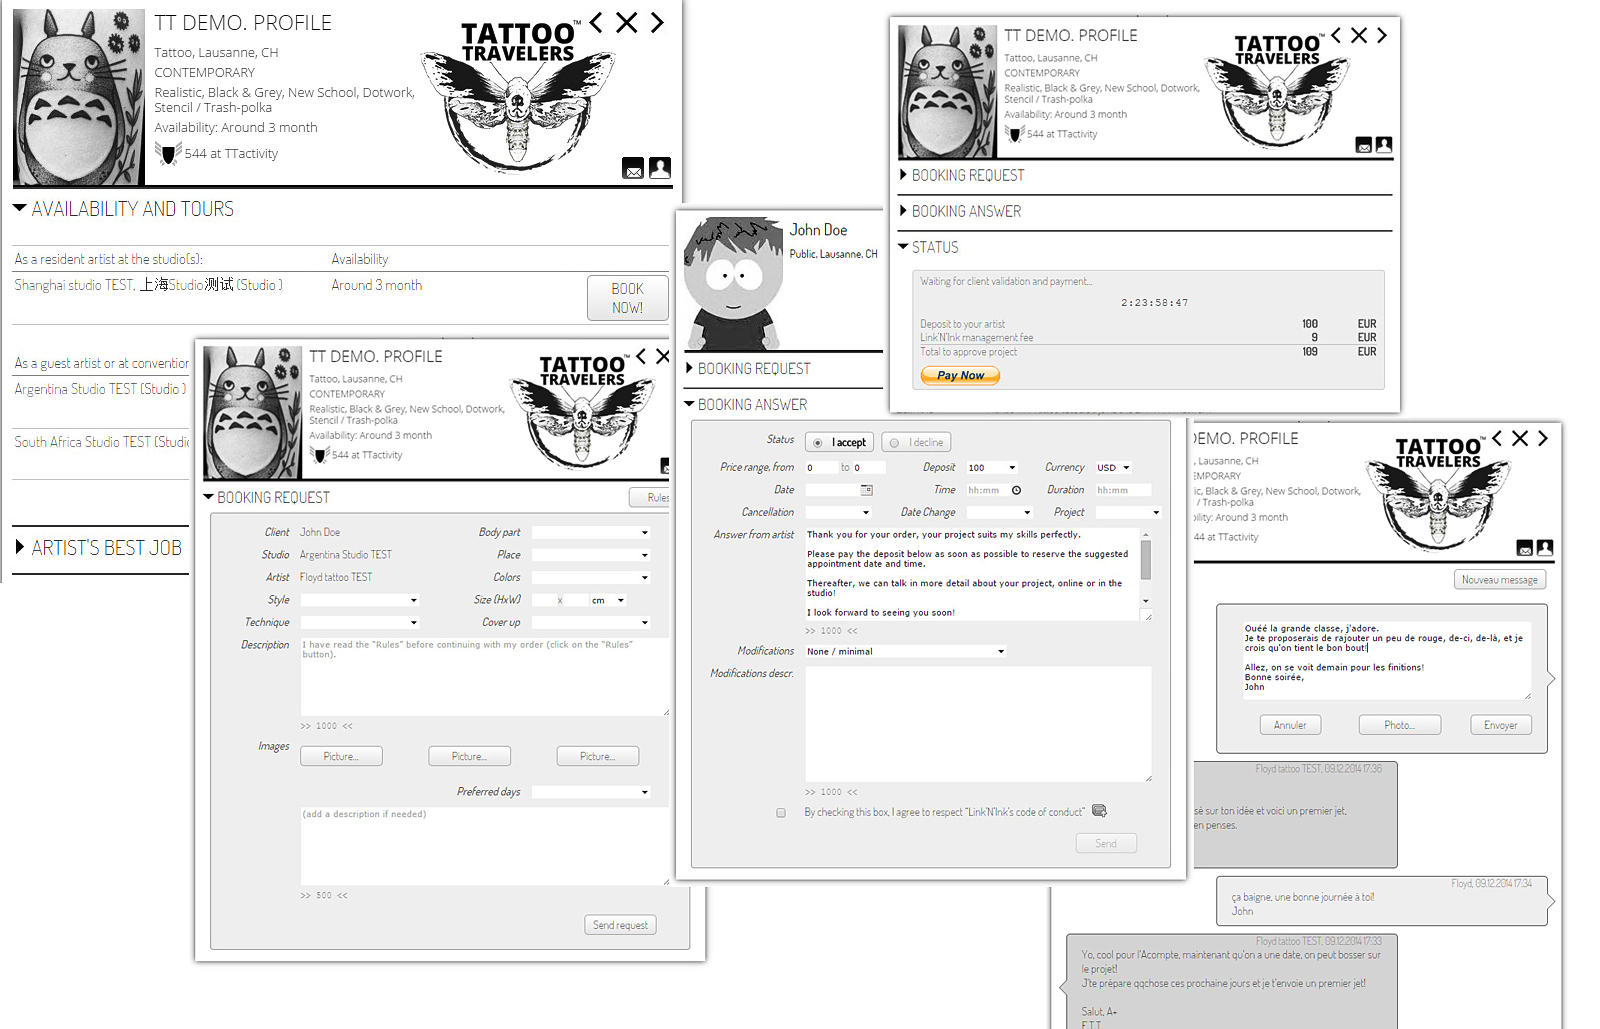 Booking process is ready now and free to use « Tattoo Travelers